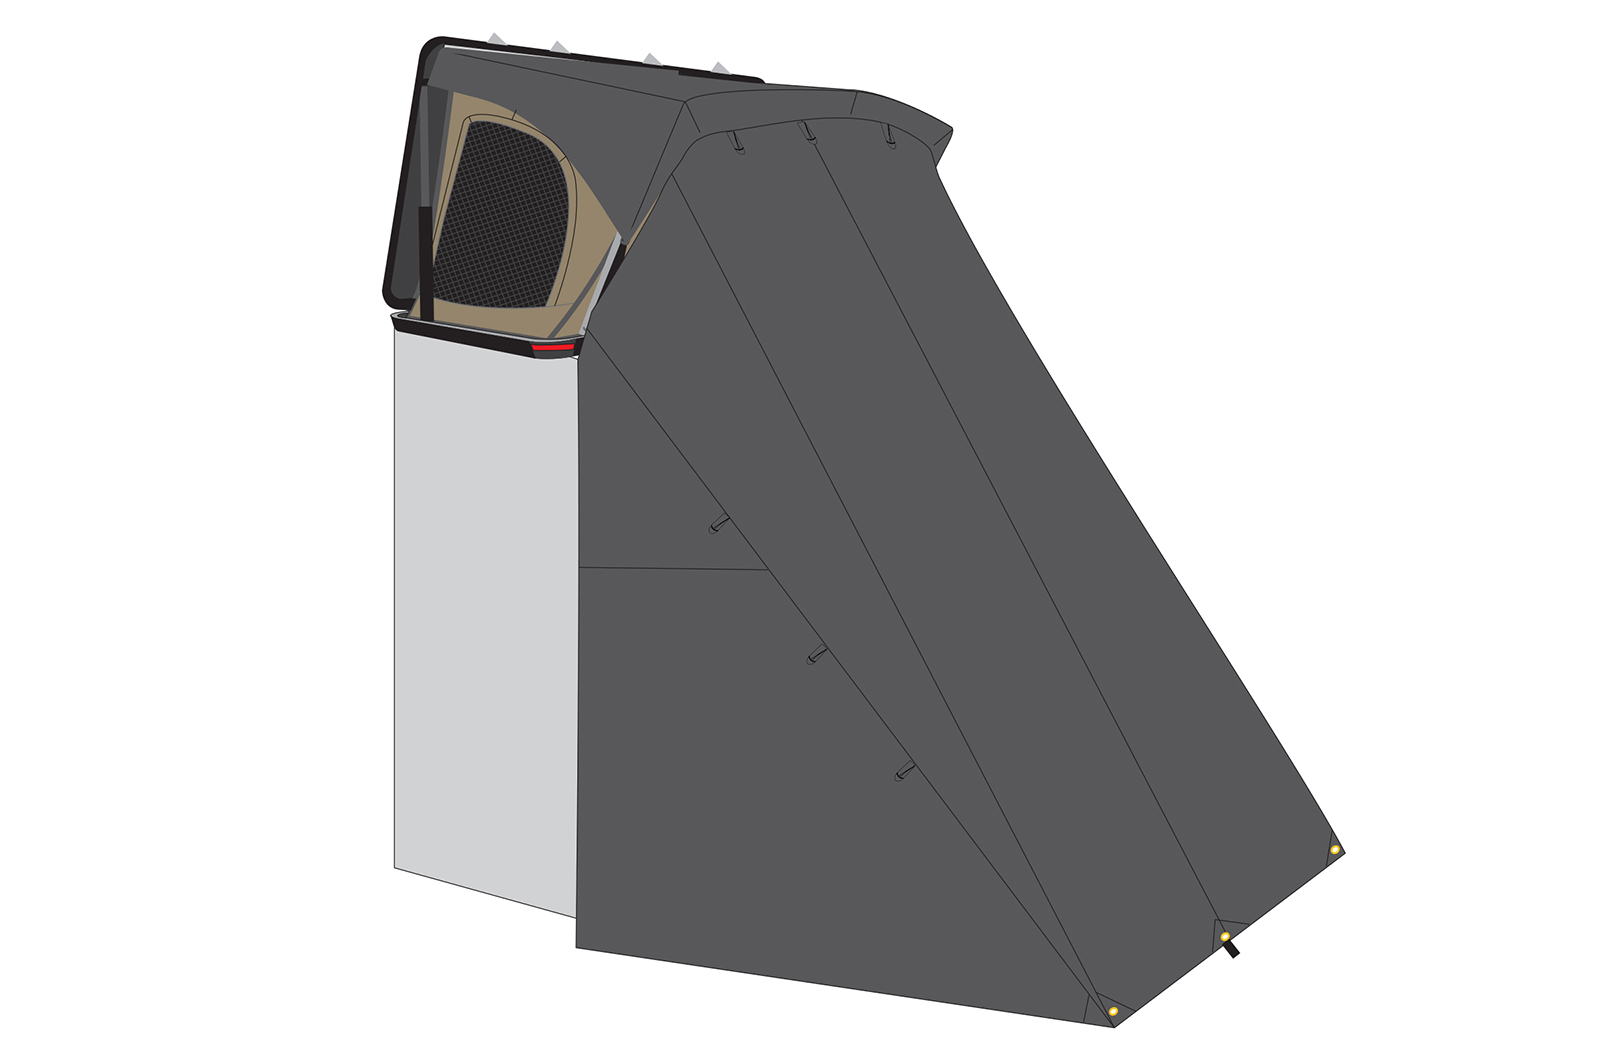 Sheepie Bookara awning plus